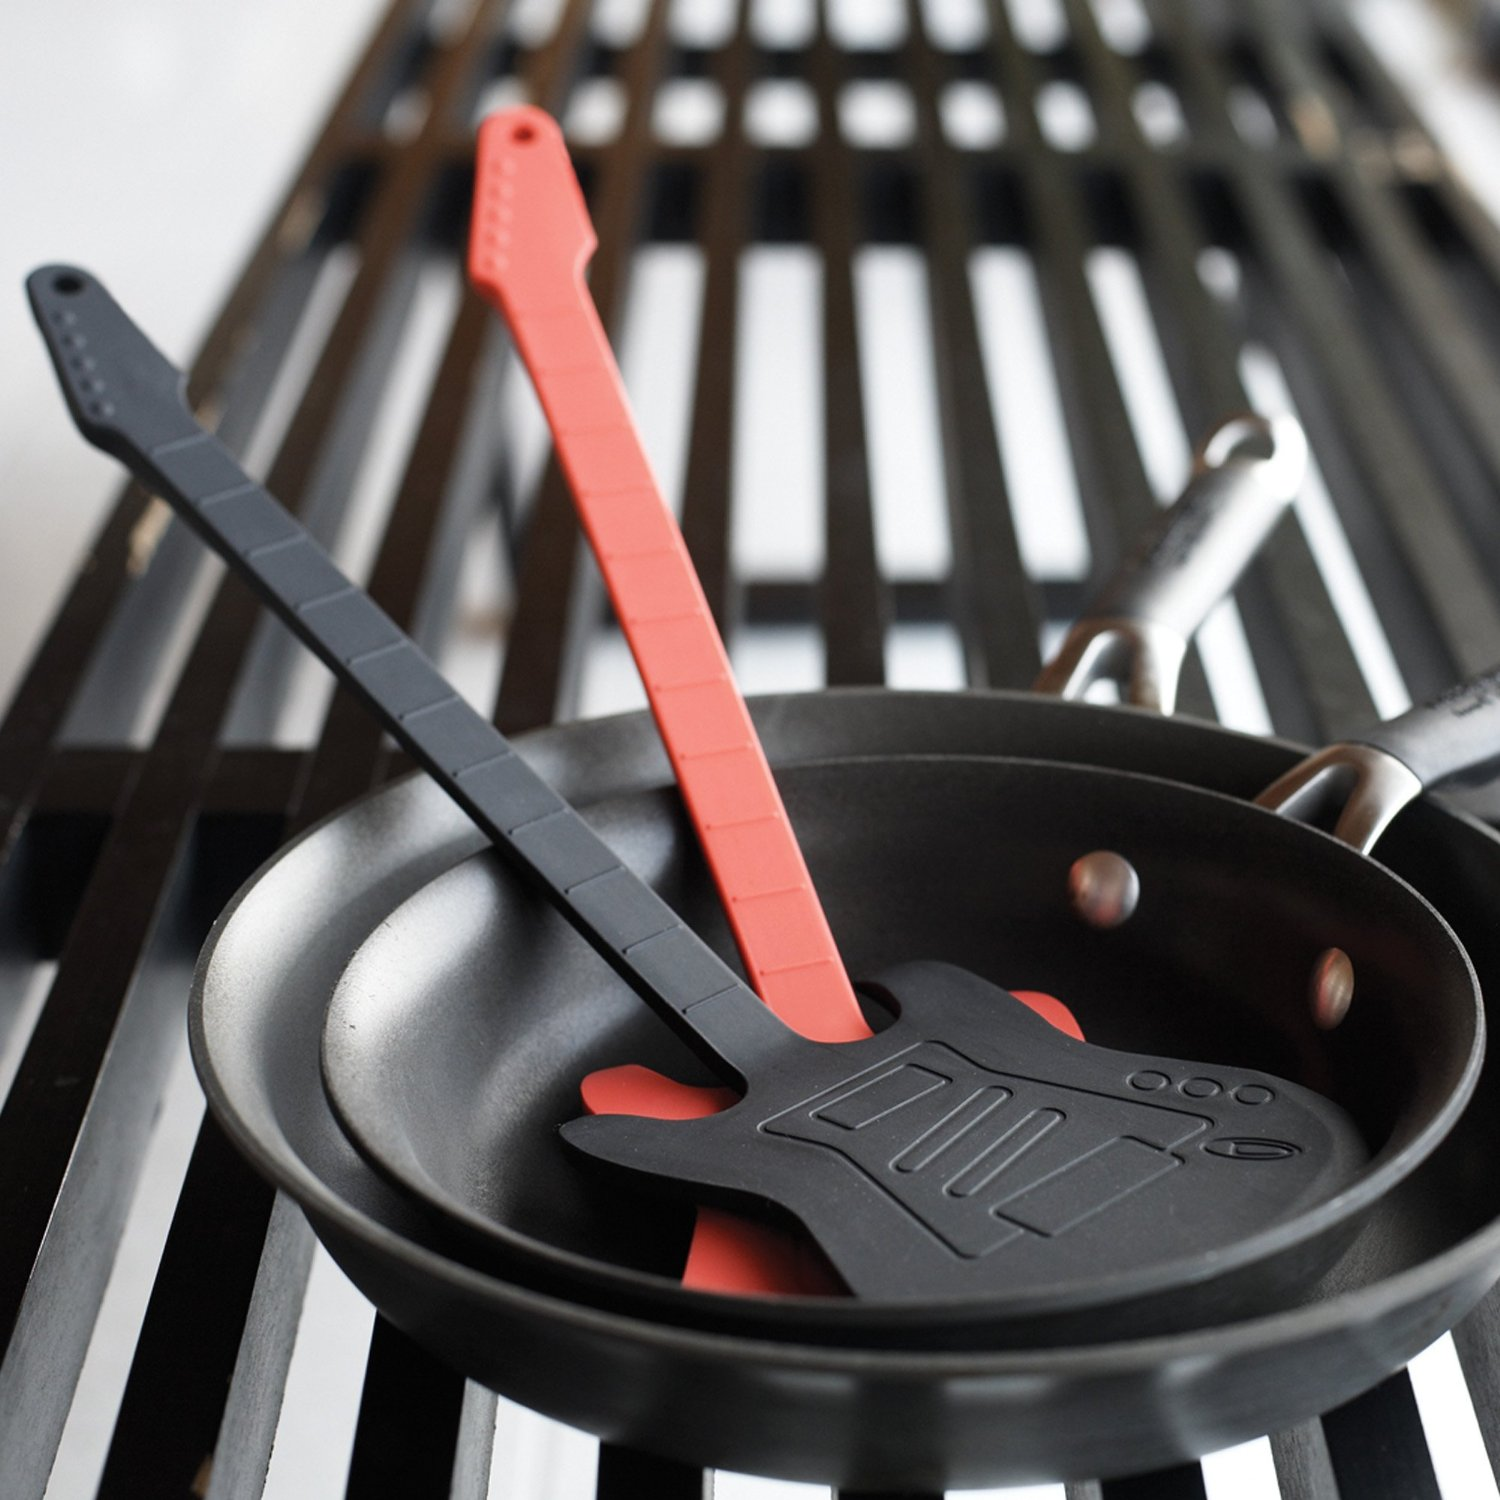 Black and Red Rock Guitar Spatula